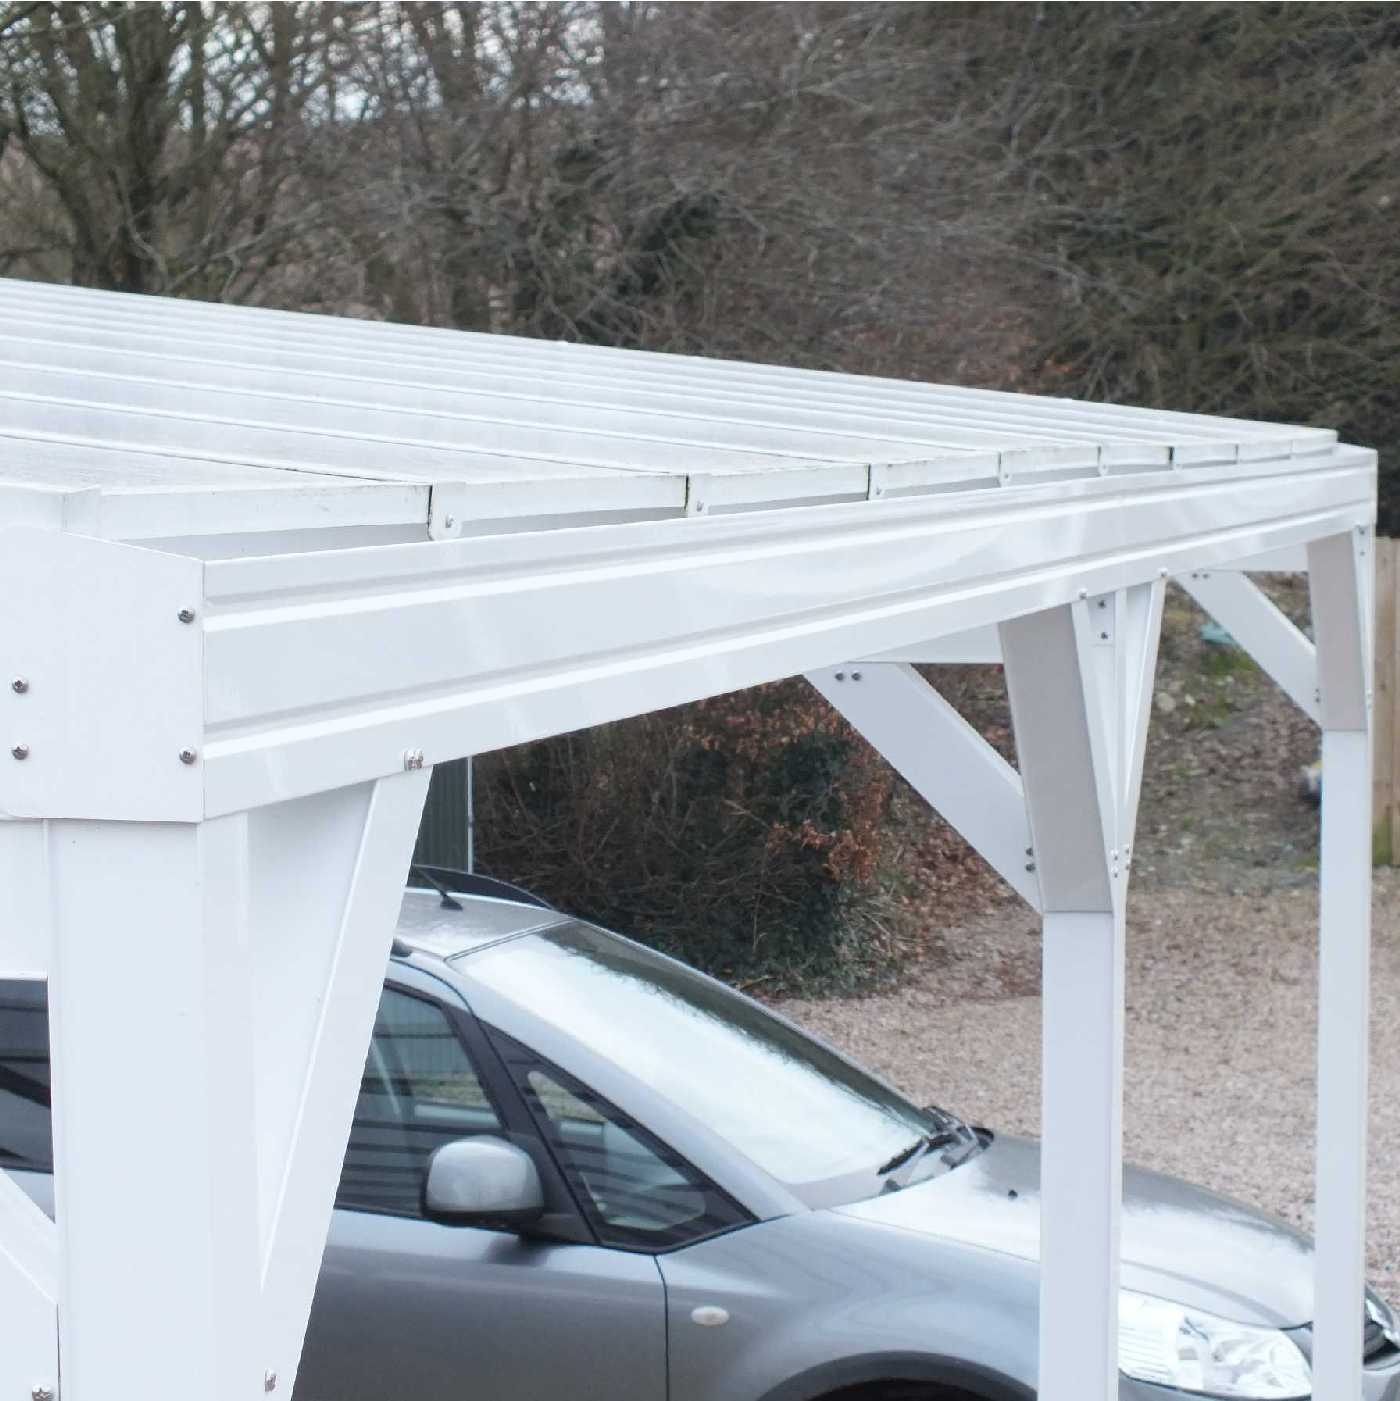 Omega Smart Free-Standing, MonoPitch Roof Canopy with 16mm Polycarbonate Glazing - 3.5m (W) x 3.5m (P), (6) Supporting Posts from Omega Build